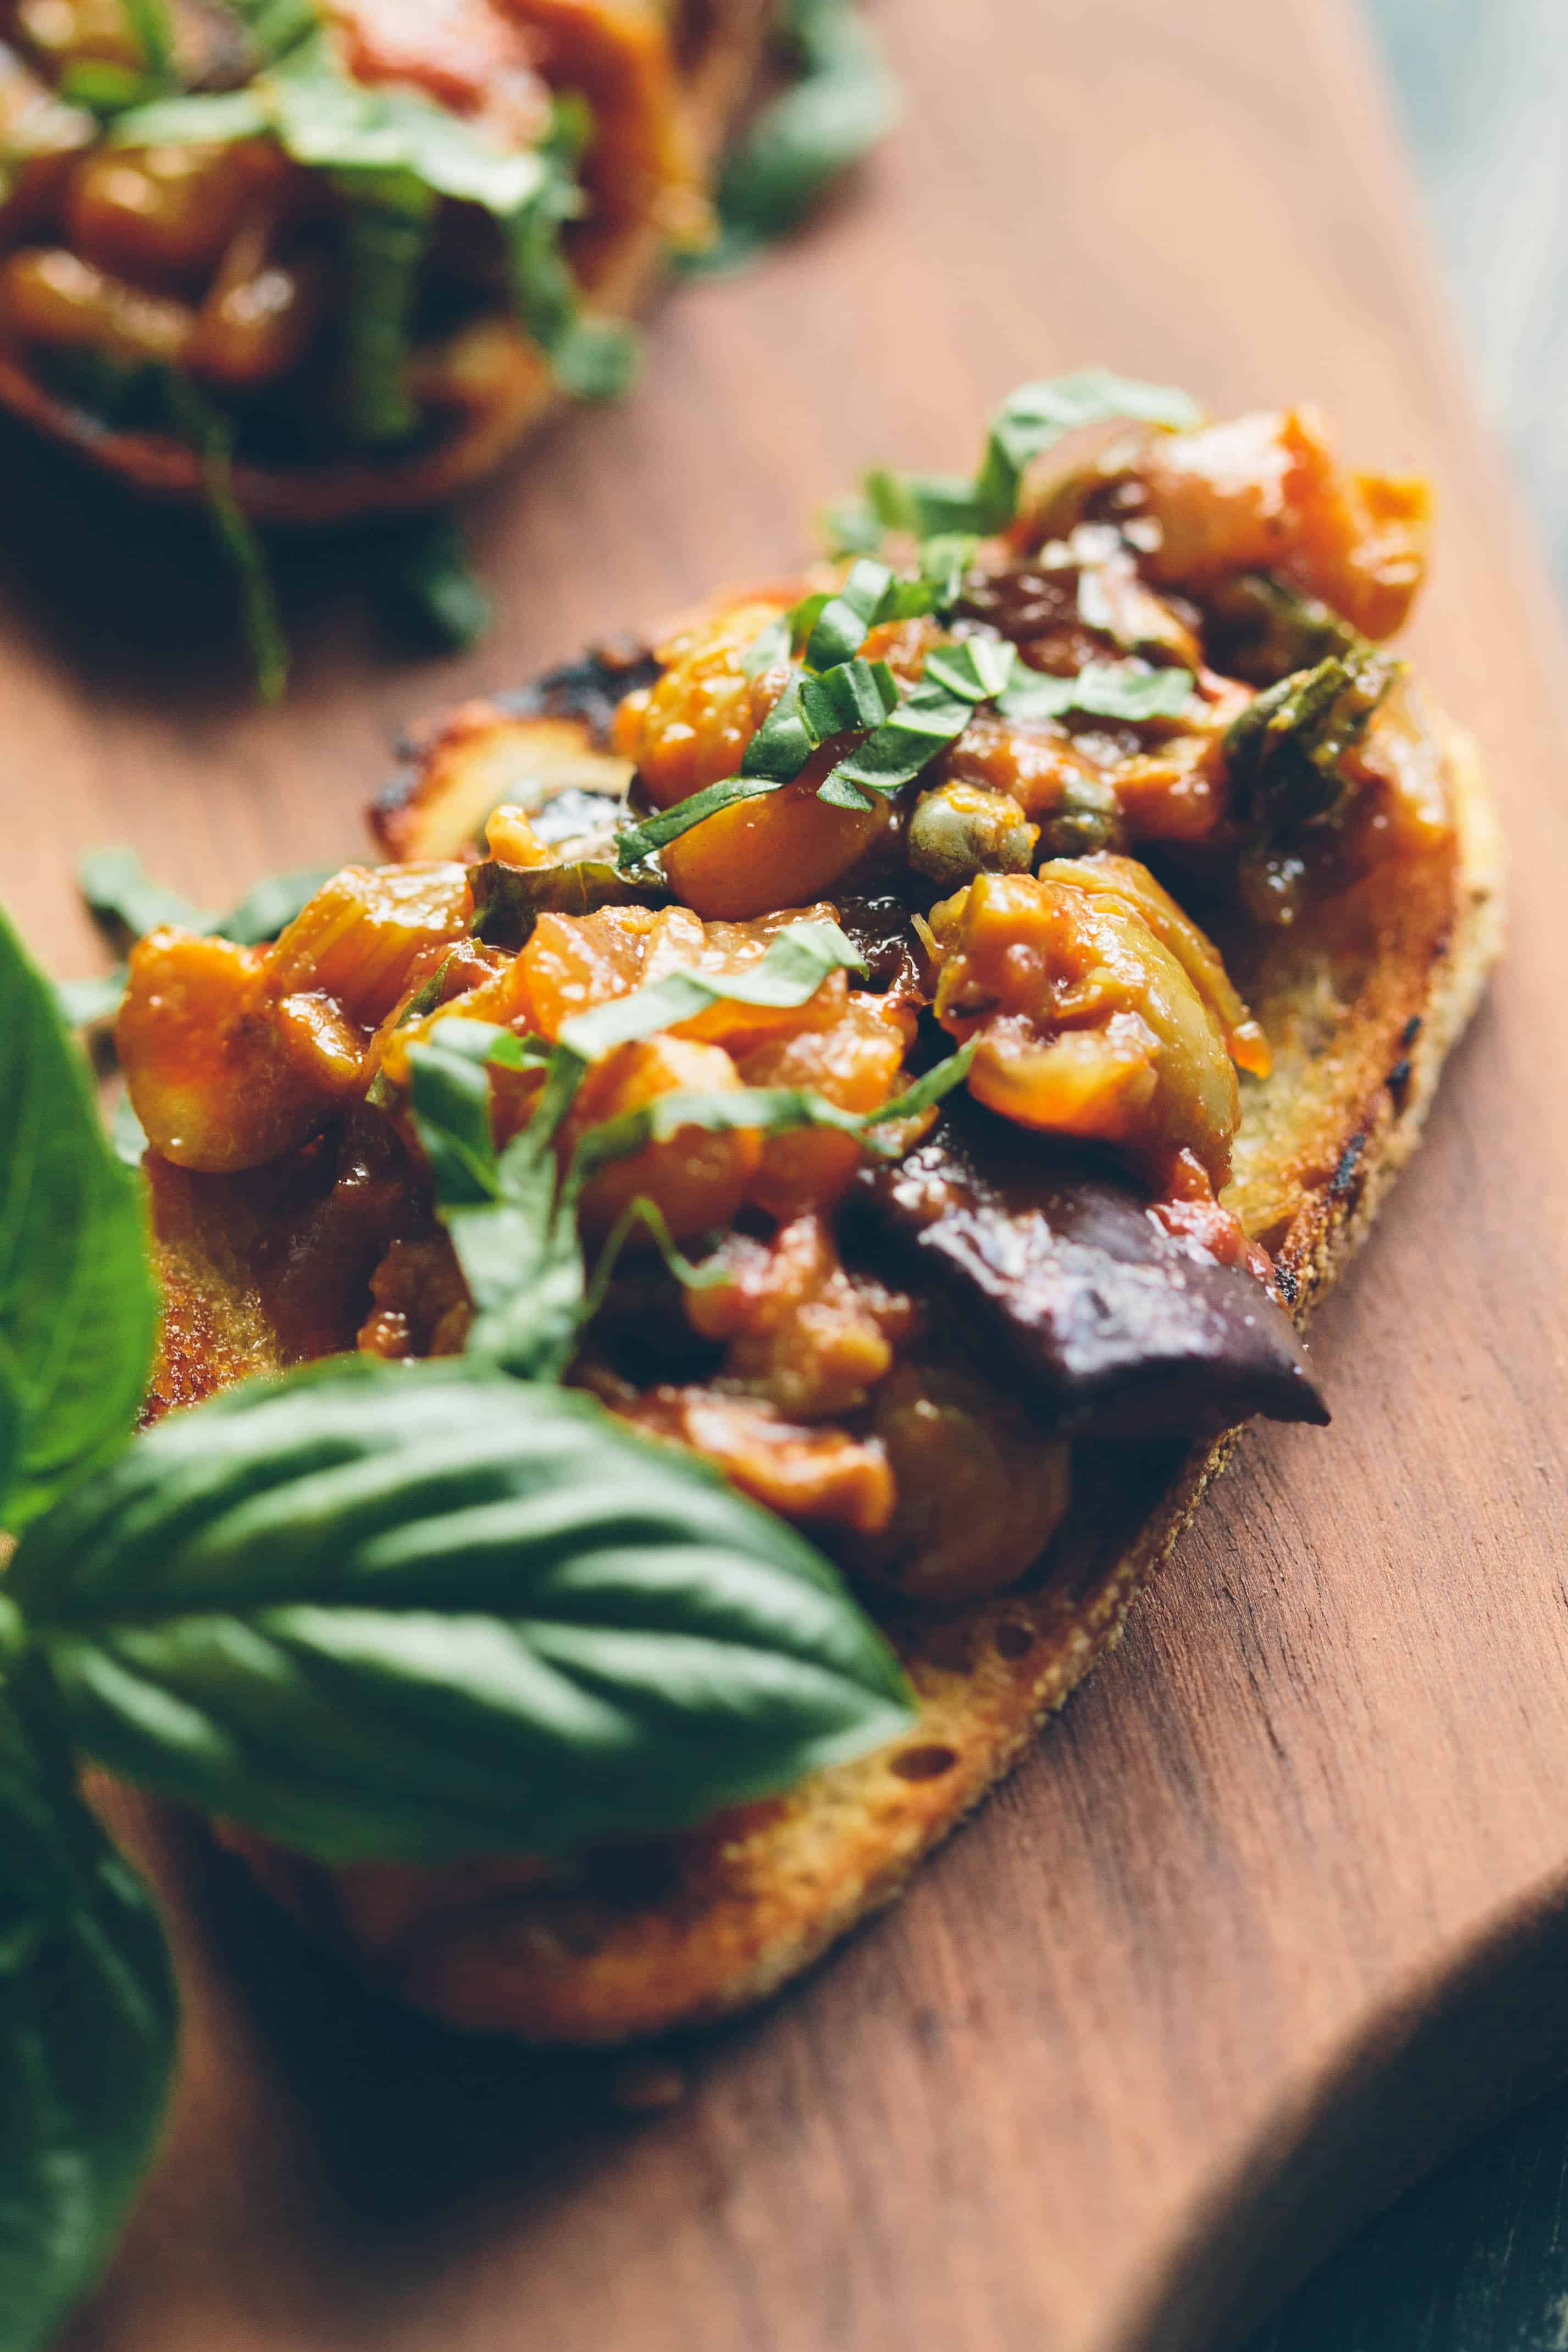 EGGPLANT CAPONATA | Traditional recipe for Sicilian eggplant relish. Sweet, sour, salty and so delicious! #Sicilian #eggplant #agrodolce #recipe #salad #relish | ColeyCooks.com